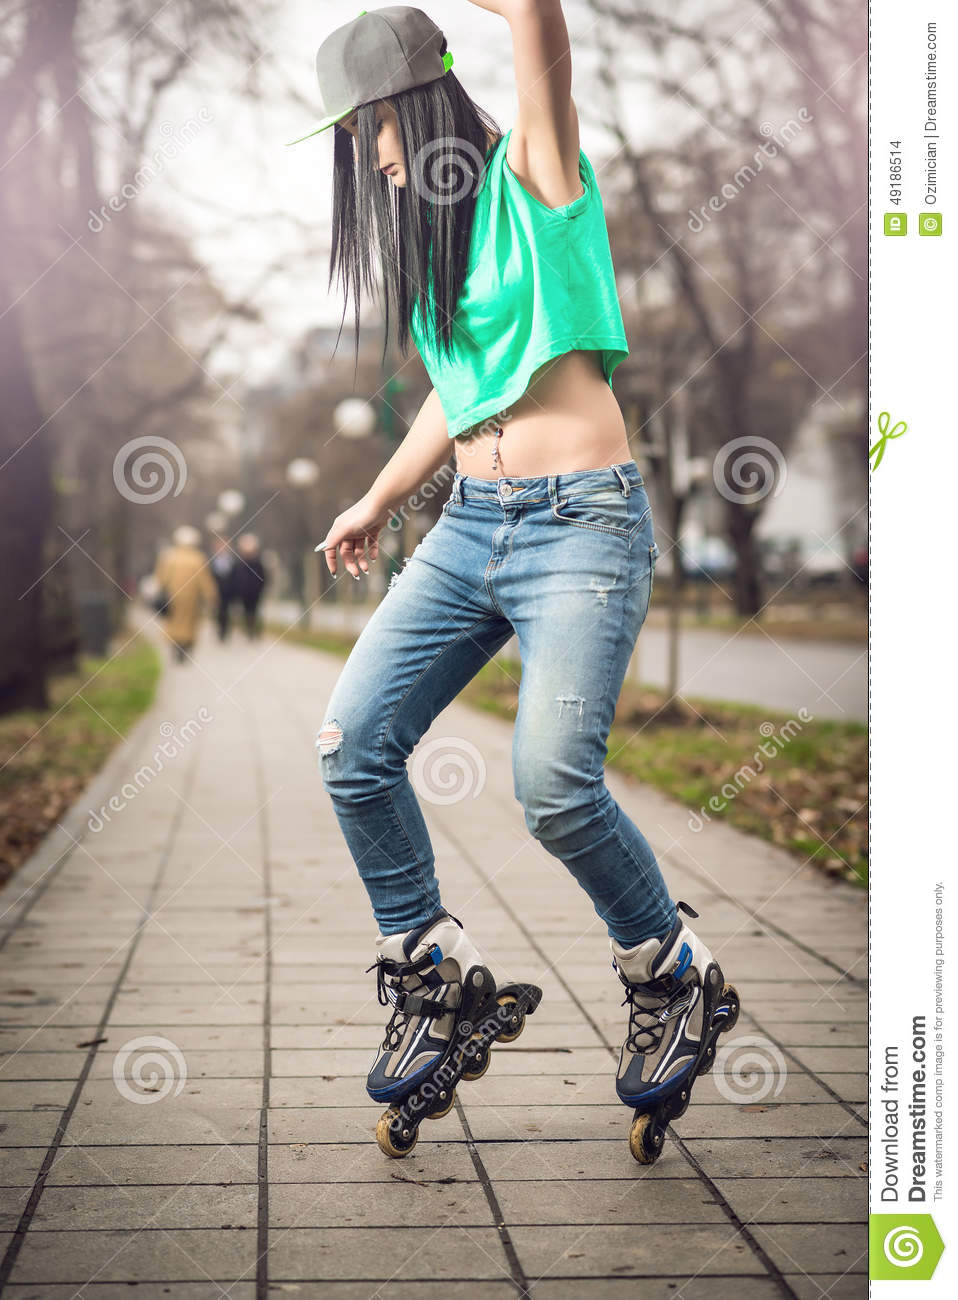 Rollerblade / Roller Skating Woman Stock Images - Image